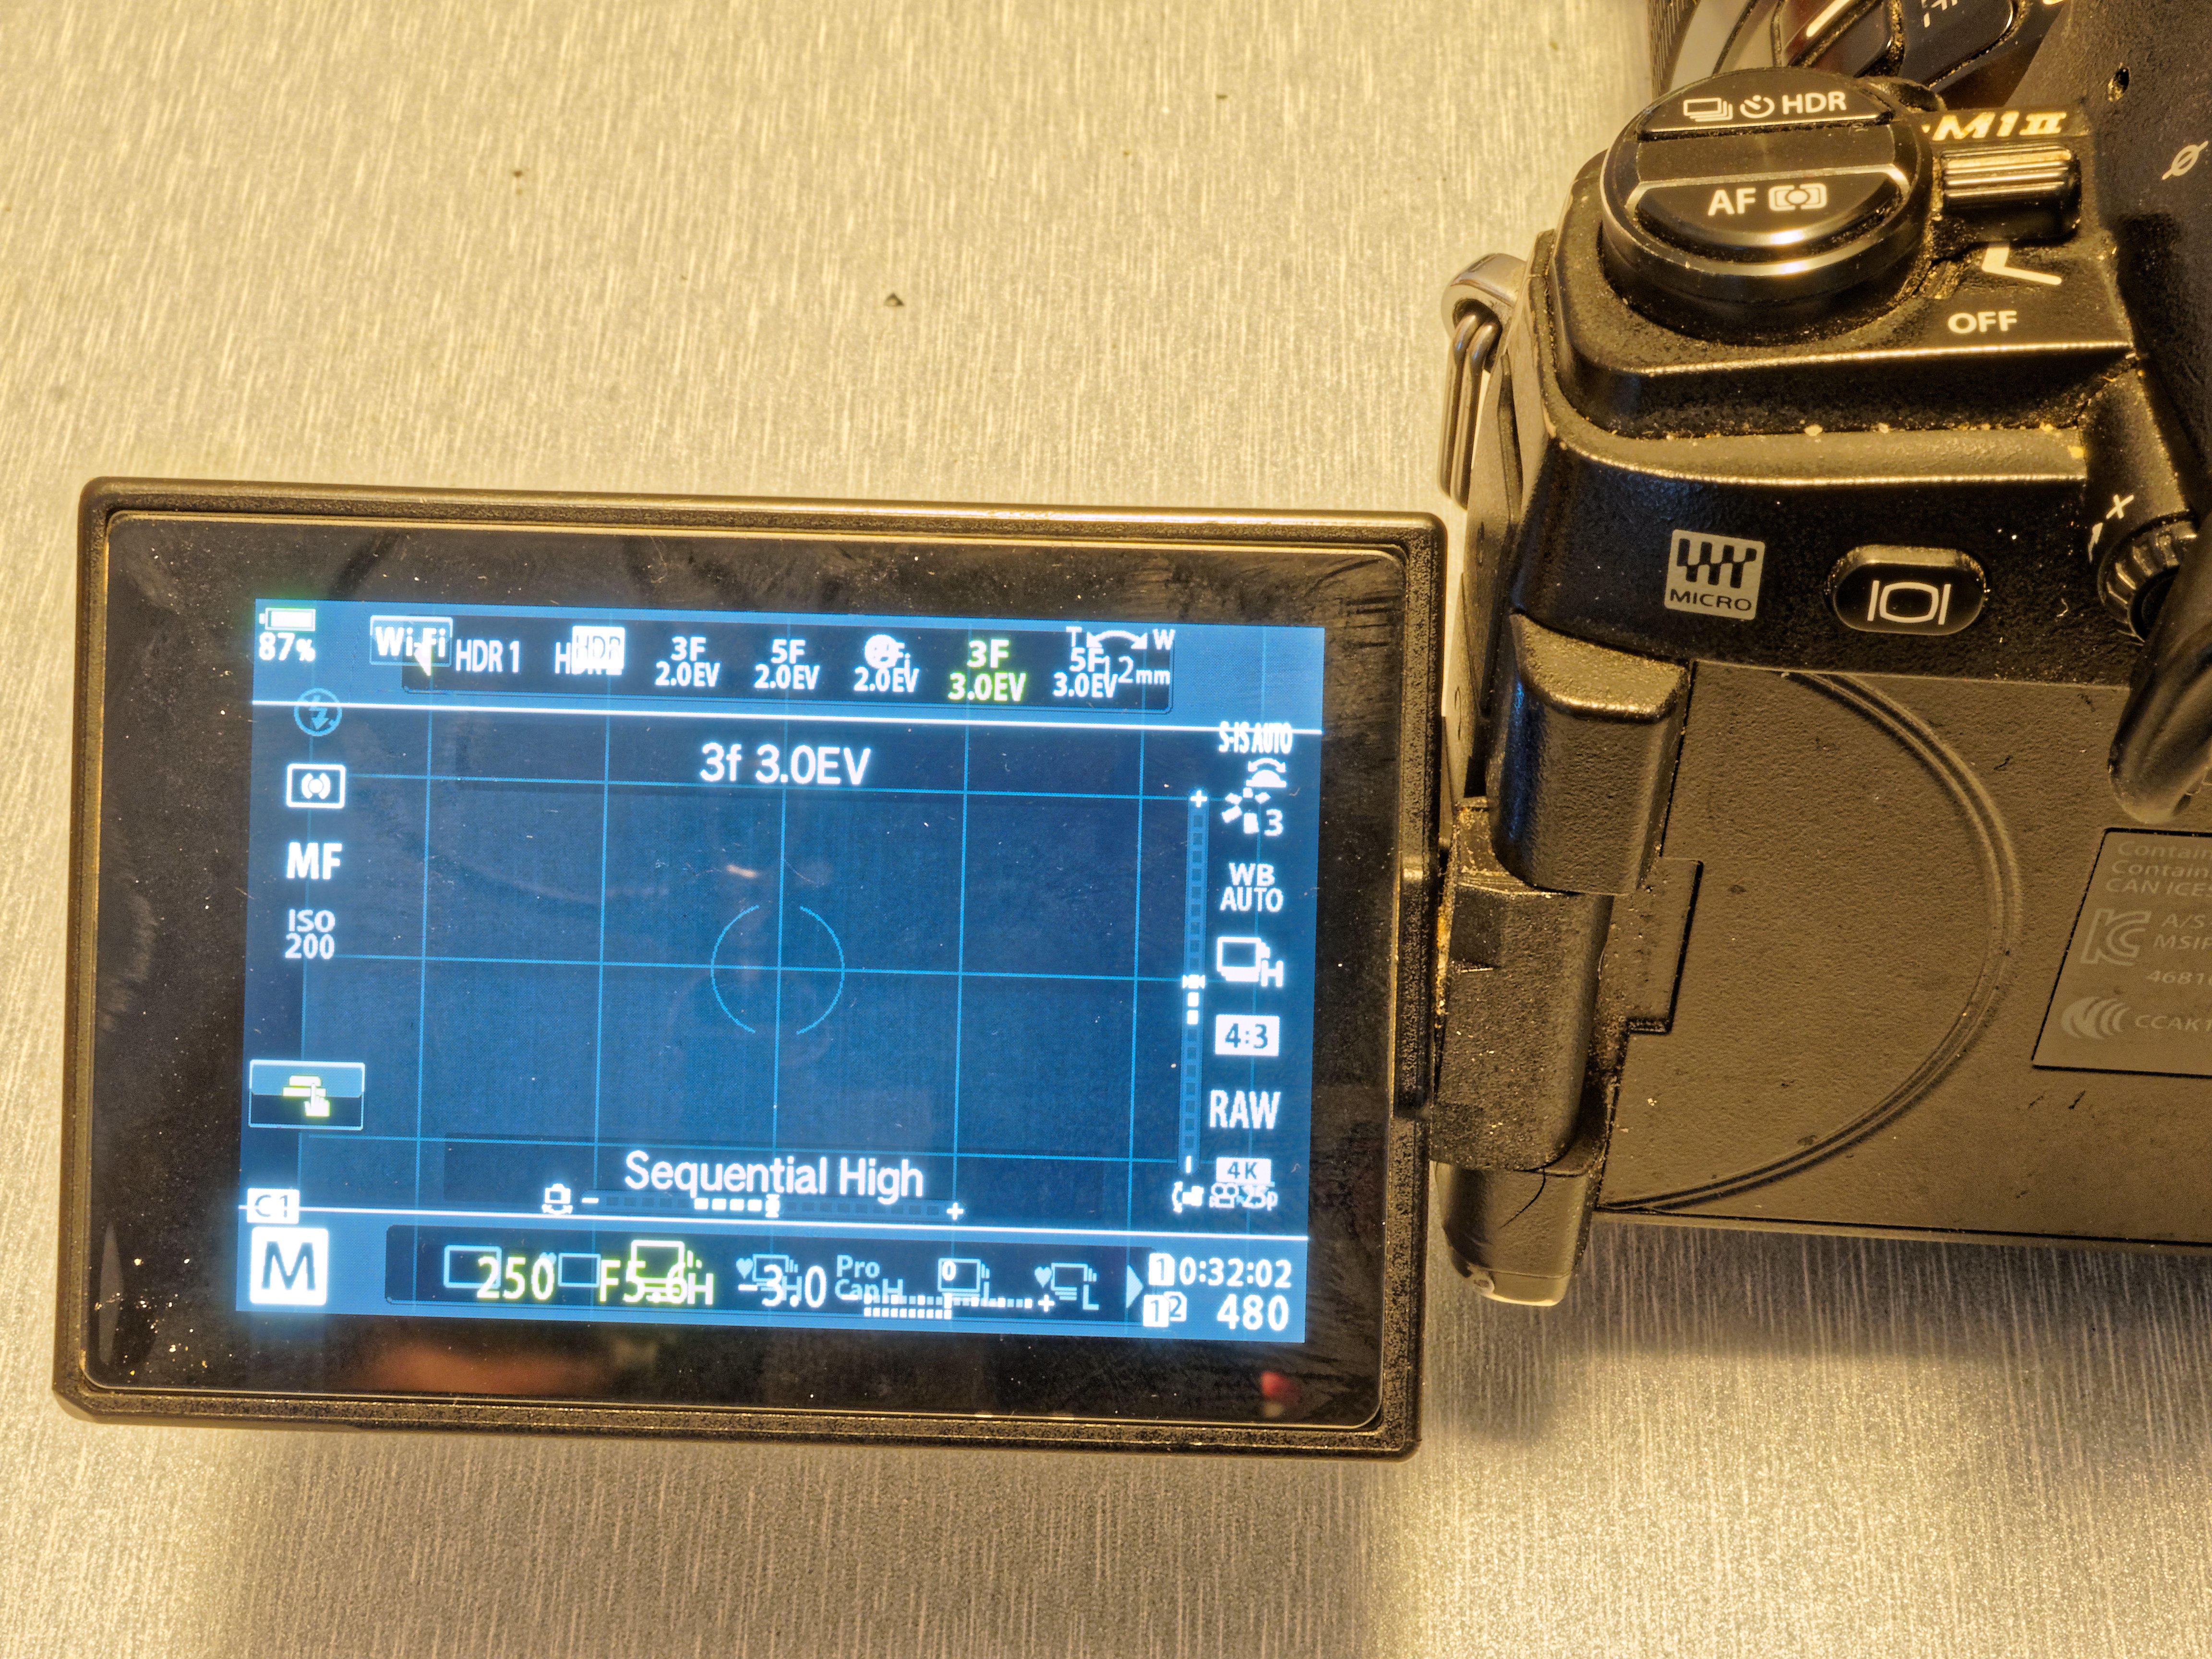 This should be E-M1-II-E-M5-III-comparison-2.jpeg.  Is it missing?